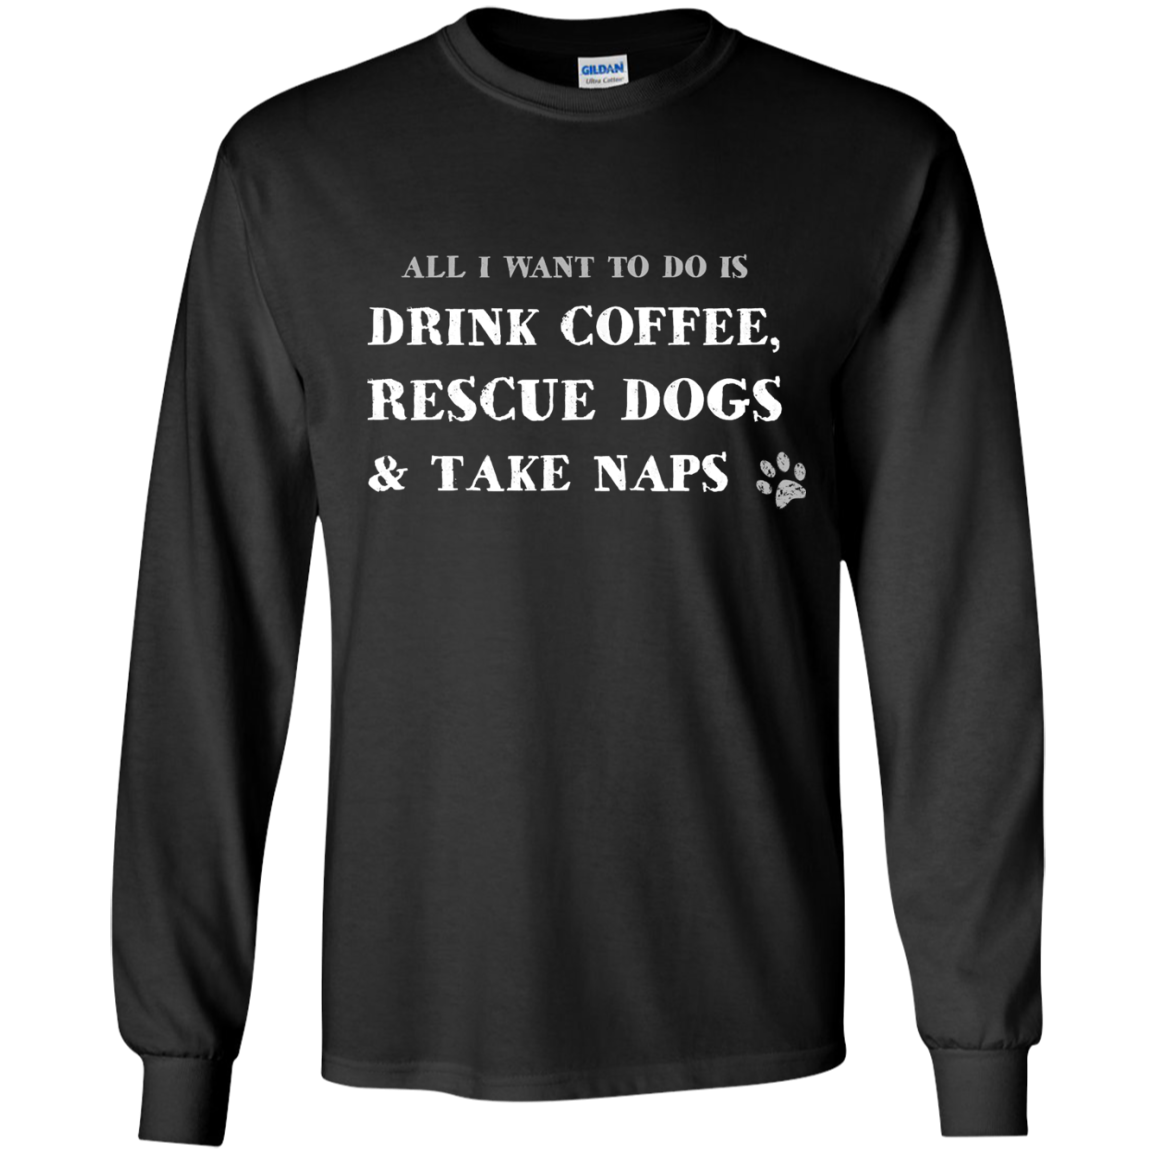 All I Want To Do Is Drink Coffee, Rescue Dogs & Take Naps T-Shirts & Hoodies - The Sun Cat